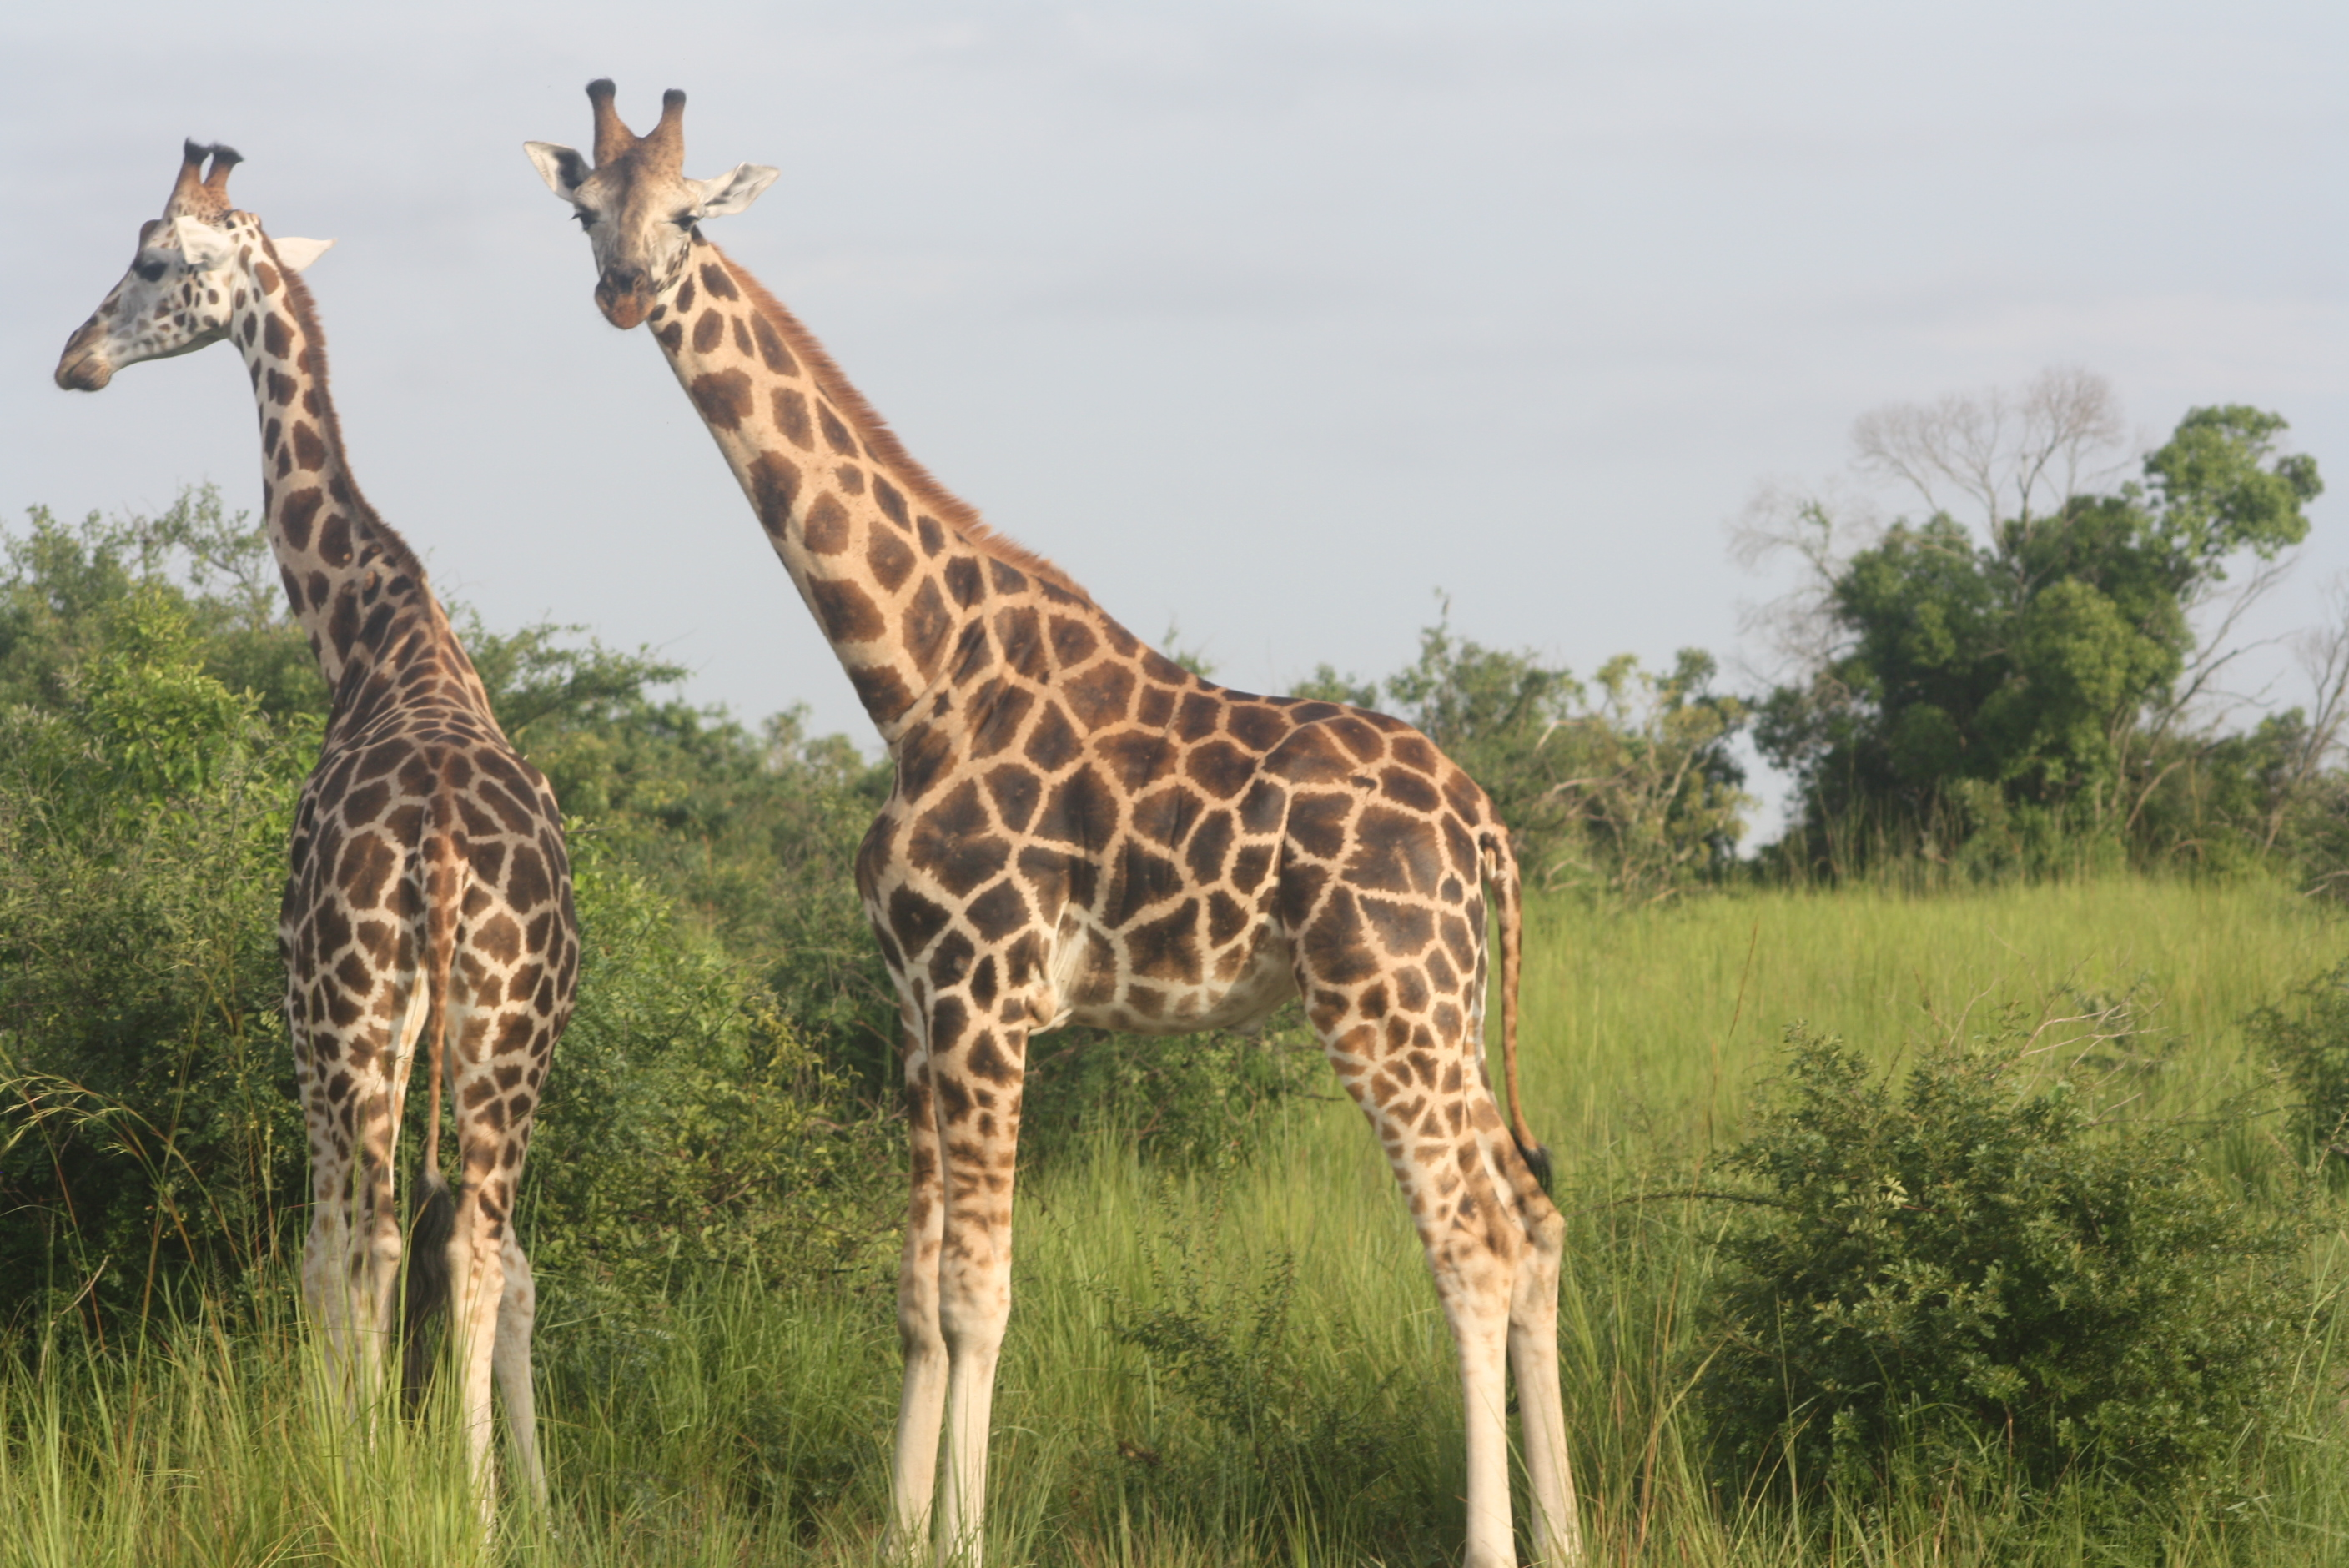 Wildlife safari ideas in Uganda